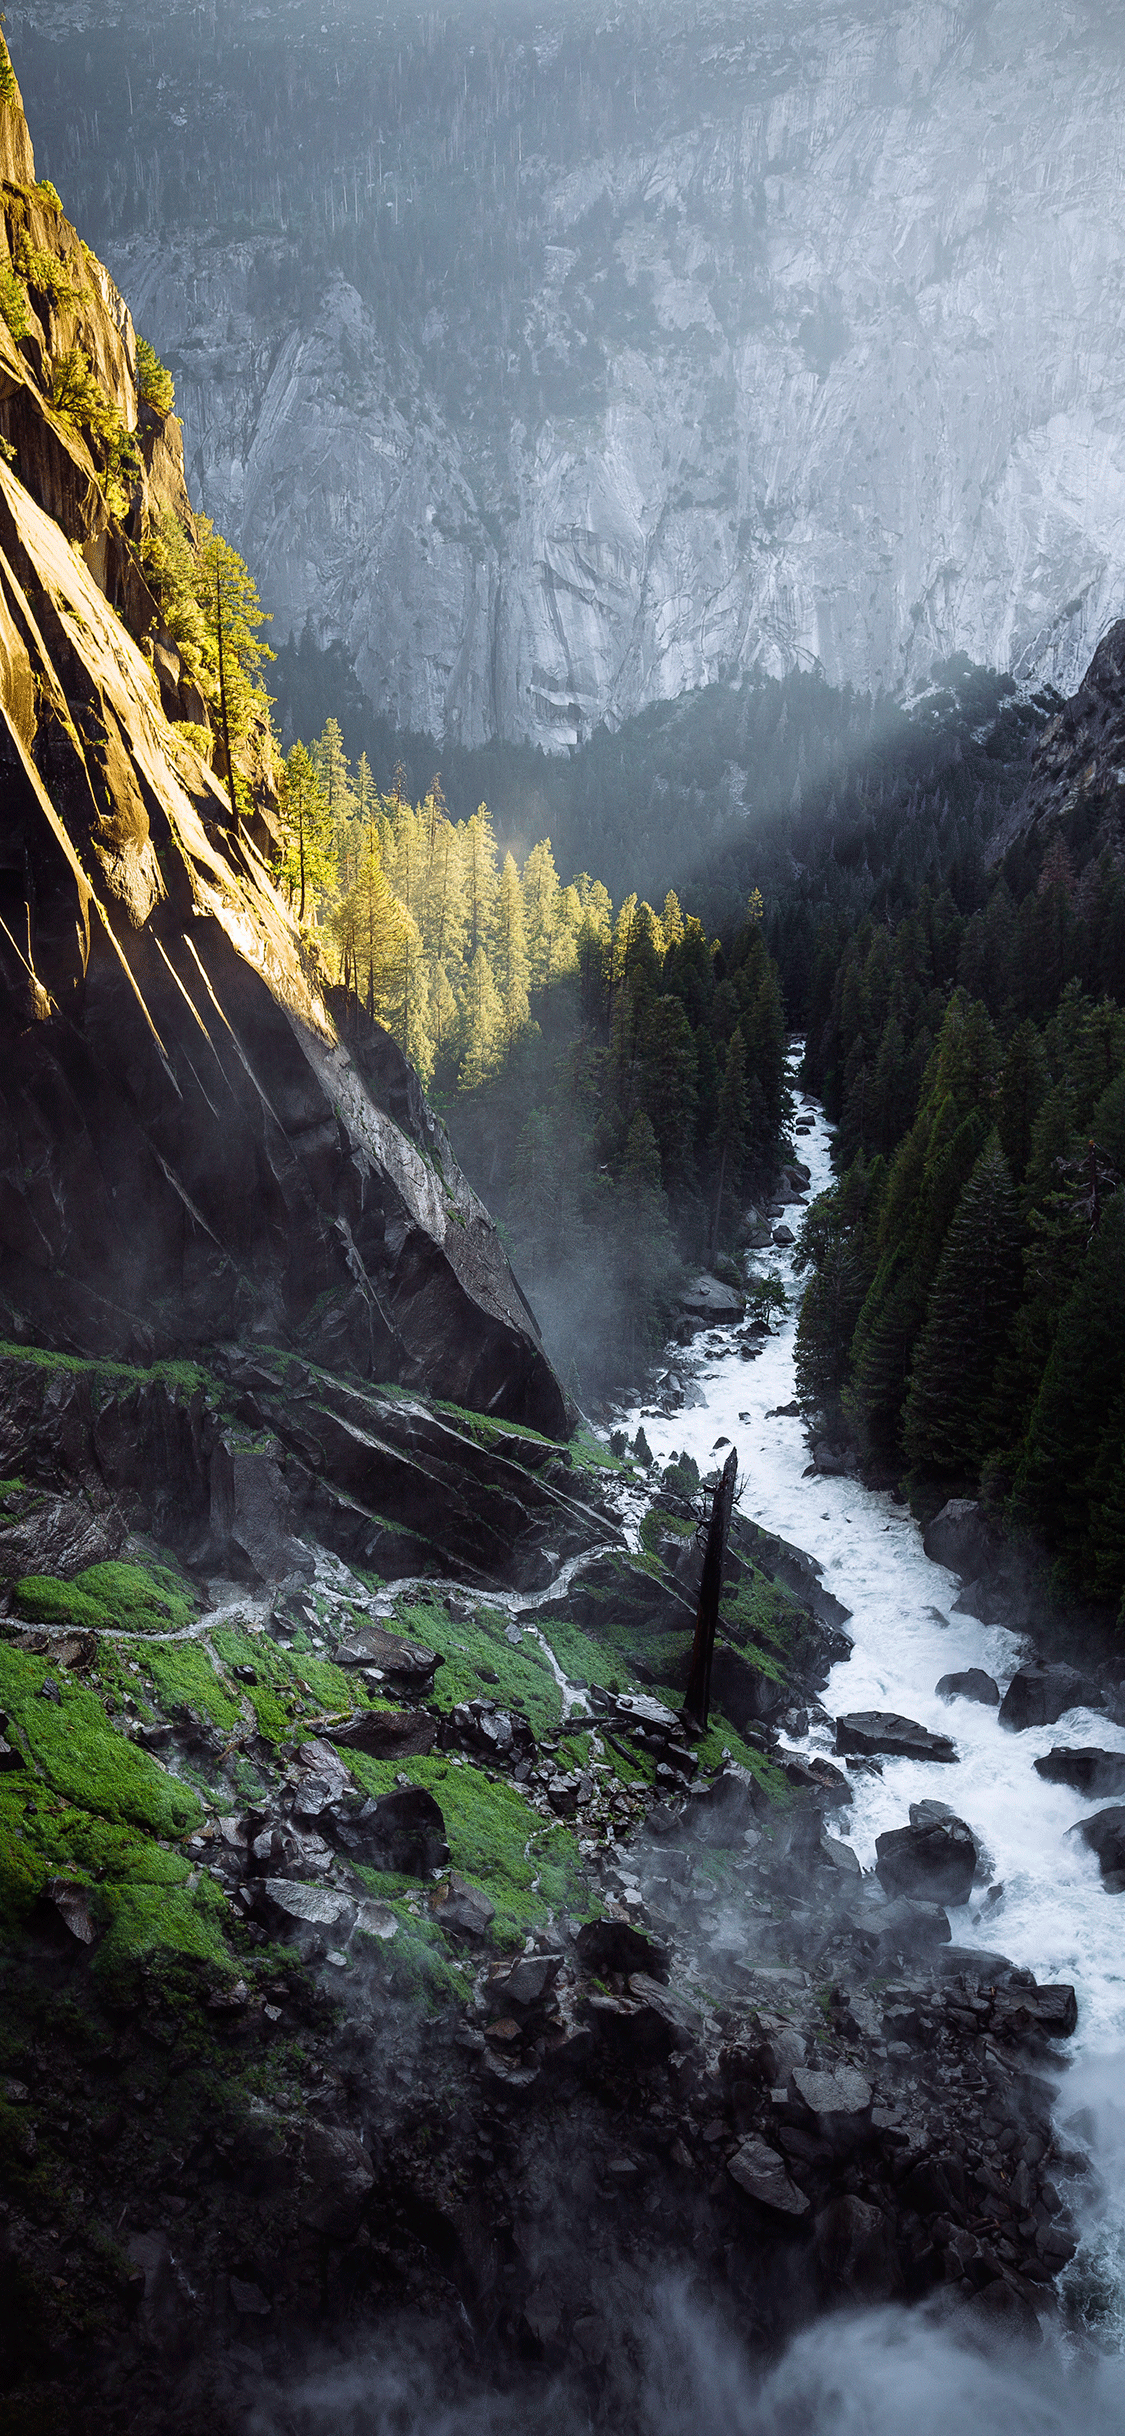 iPhone wallpaper river vernal falls Fonds d'écran iPhone du 19/07/2018